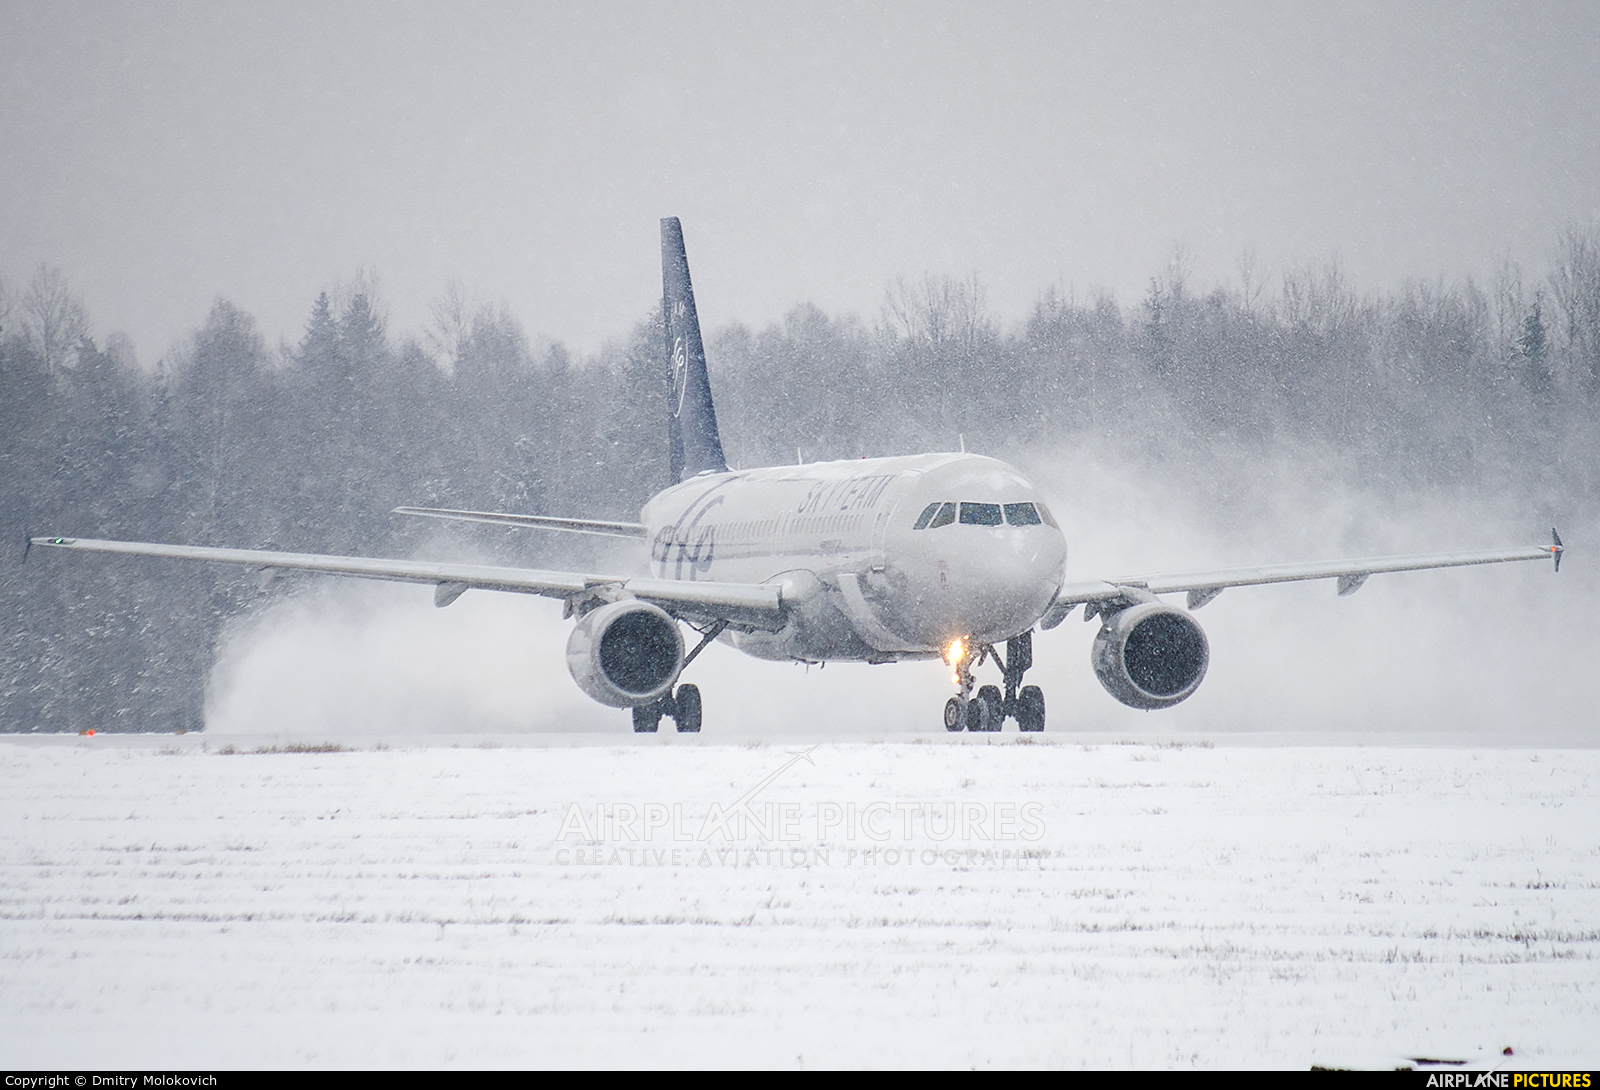 Aeroflot VP-BDK aircraft at Minsk Intl